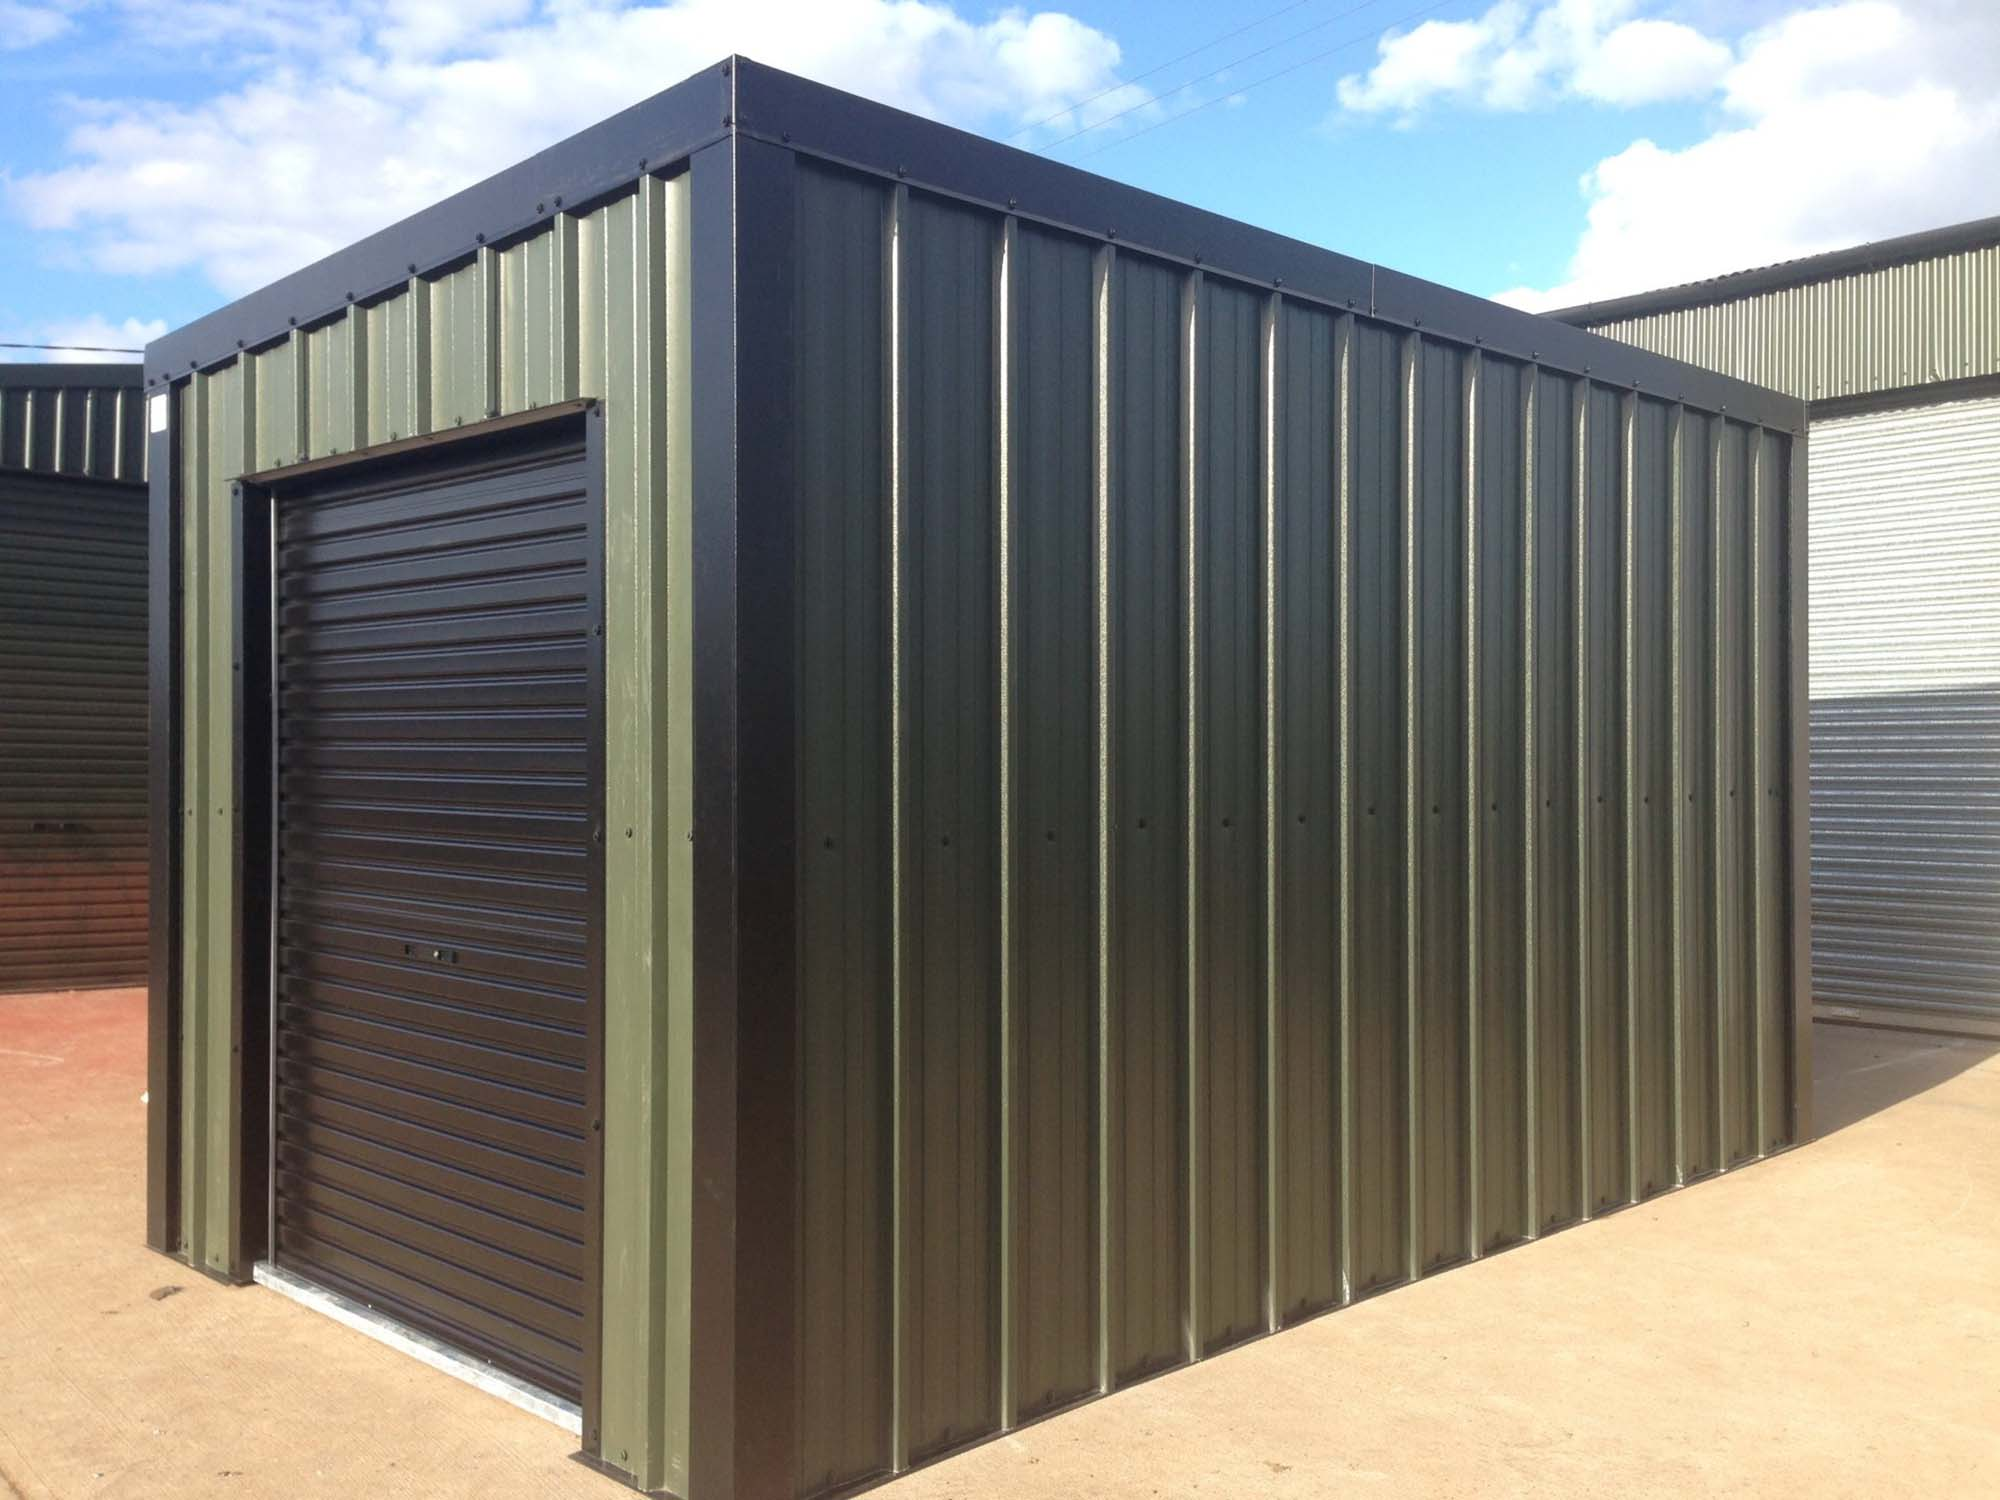 Green and black Metal Sheds